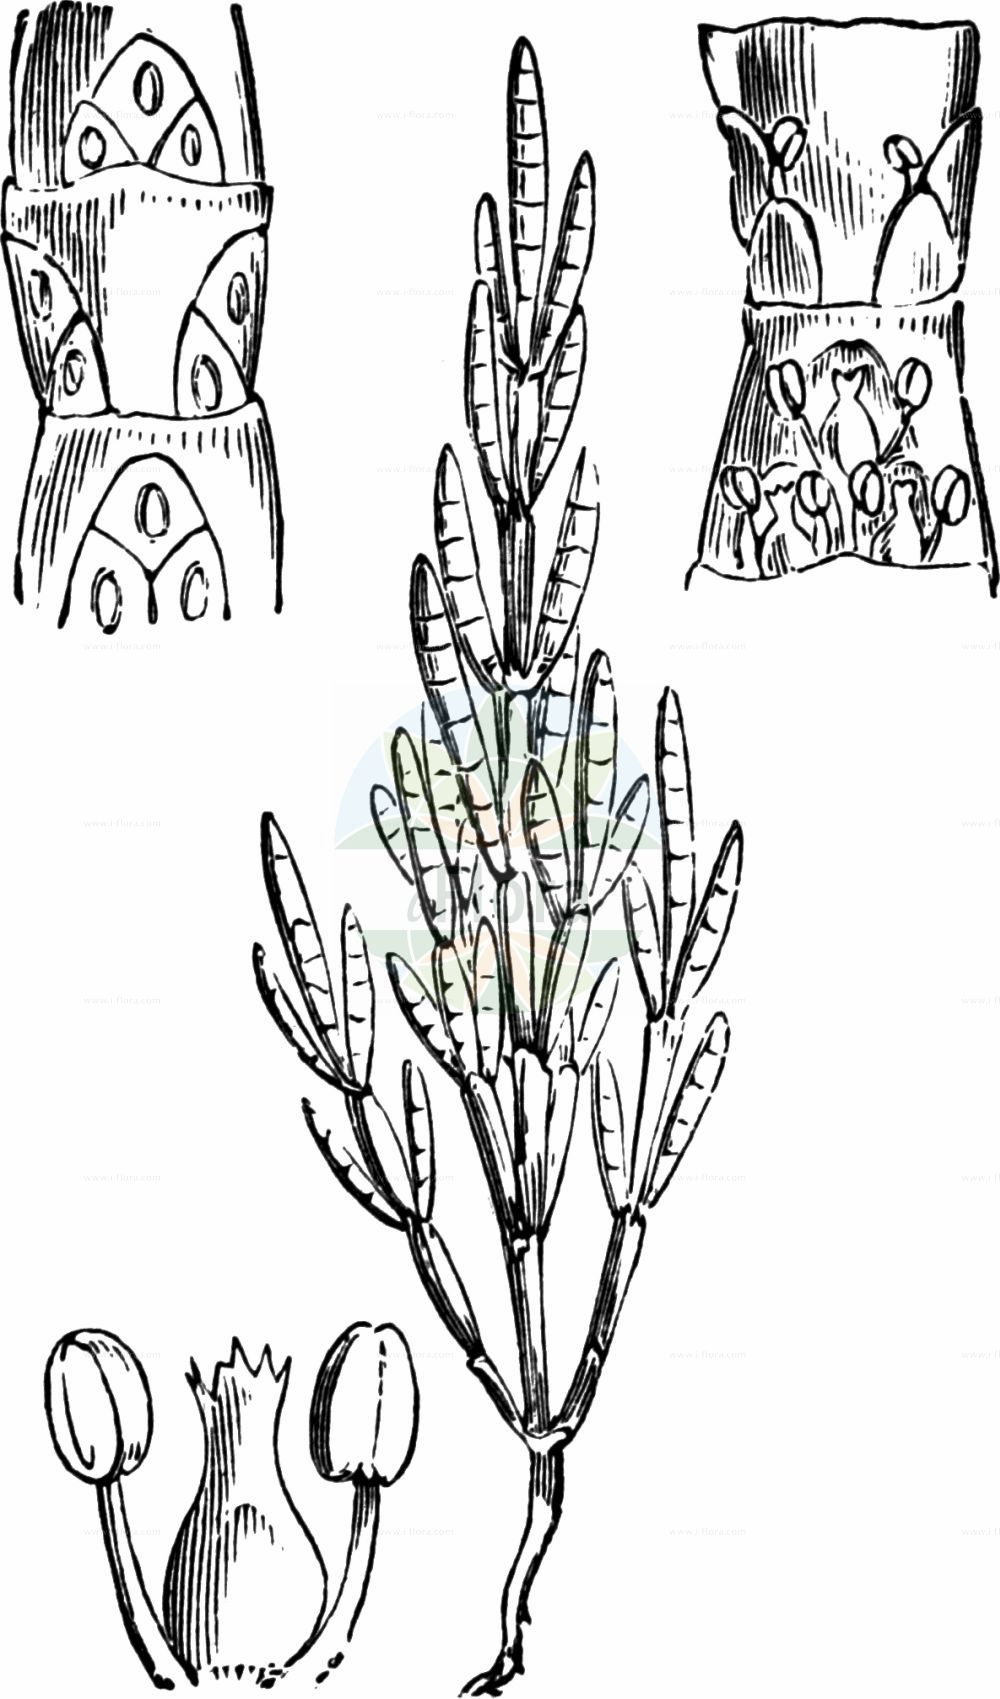 Historische Abbildung von Salicornia europaea (Europaeischer Queller - Common Glasswort). Das Bild zeigt Blatt, Bluete, Frucht und Same. ---- Historical Drawing of Salicornia europaea (Europaeischer Queller - Common Glasswort).The image is showing leaf, flower, fruit and seed.(Salicornia europaea,Europaeischer Queller,Common Glasswort,Salicornia annua,Salicornia europaea,Salicornia herbacea,Europaeischer Queller,Gewoehnlicher Queller,Kurzaehren-Queller,Queller,Common Glasswort,Purple Glasswort,Glaucous Glasswort,Red Swampfire,Slender Grasswort,Salicornia,Queller,Glassworts,Amaranthaceae,Fuchsschwanzgewaechse,Pigweed family,Blatt,Bluete,Frucht,Same,leaf,flower,fruit,seed,Fitch et al. (1880))